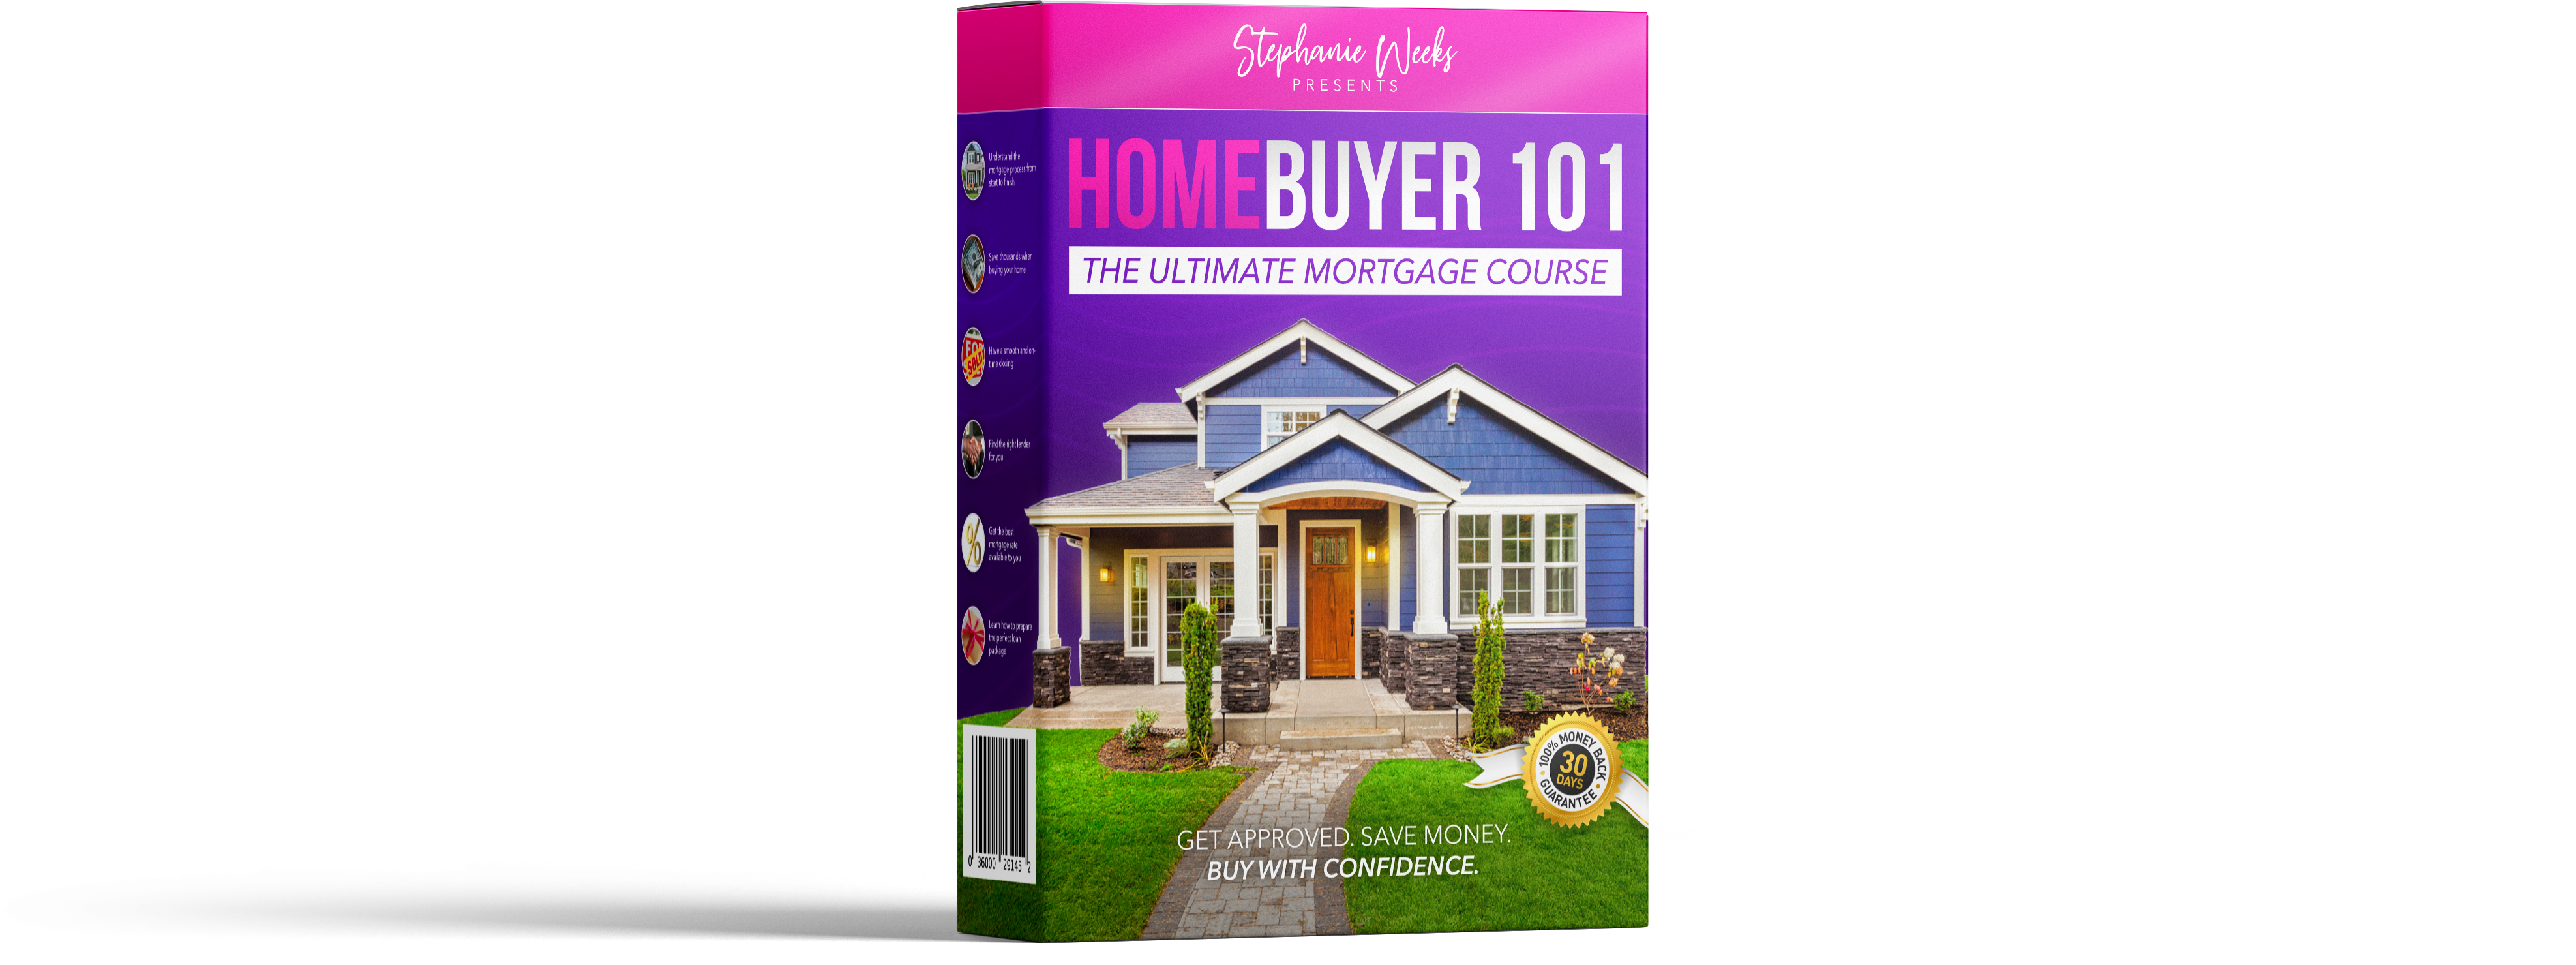 Box with Homebuyer 101 The Ultimate Mortgage Course Branding